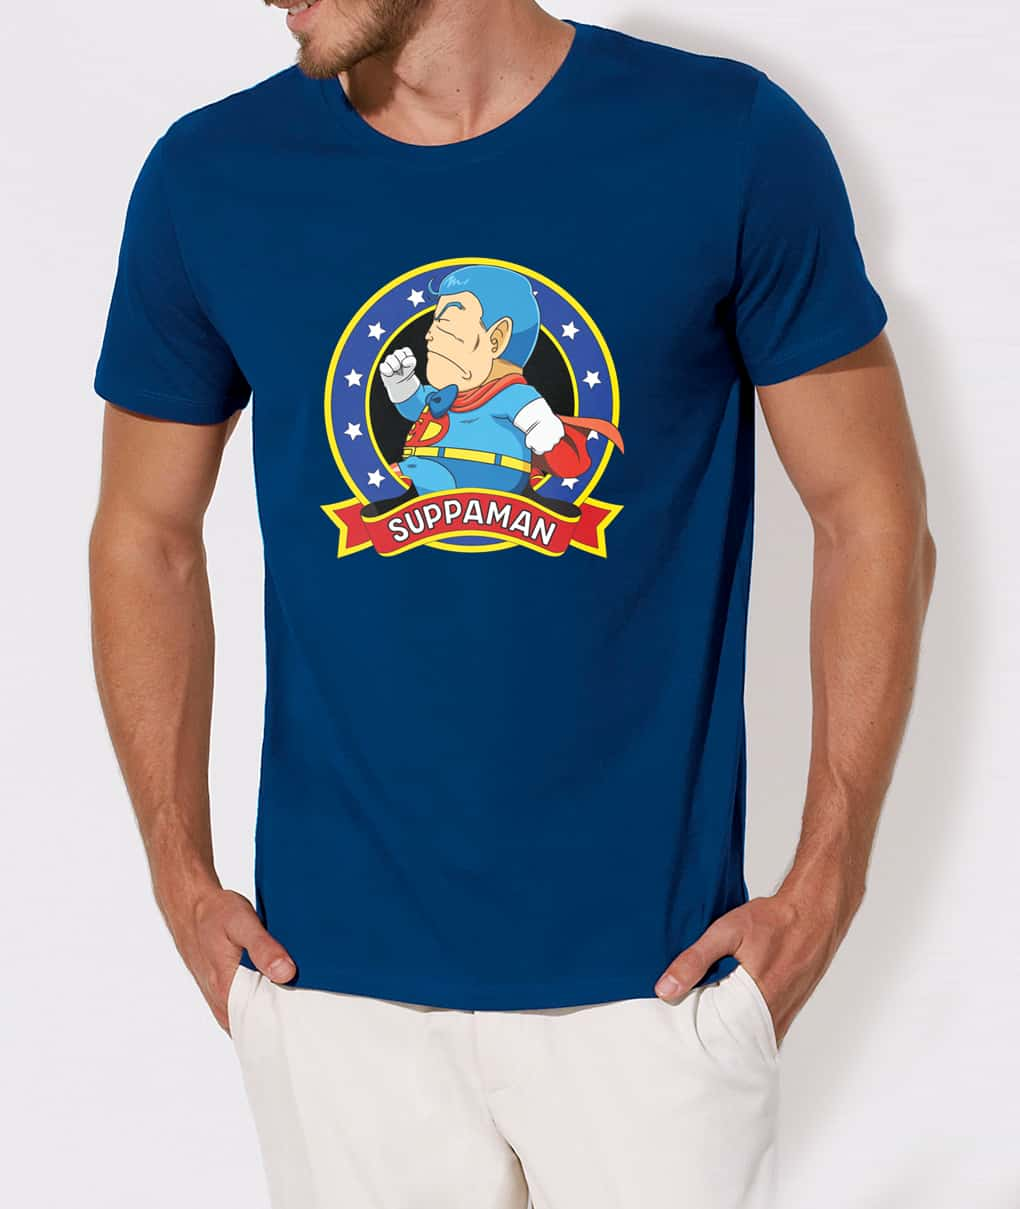 SUPPAMAN CORRIENDO CAMISETA AZUL CHICO TALLA L DR SLUMP